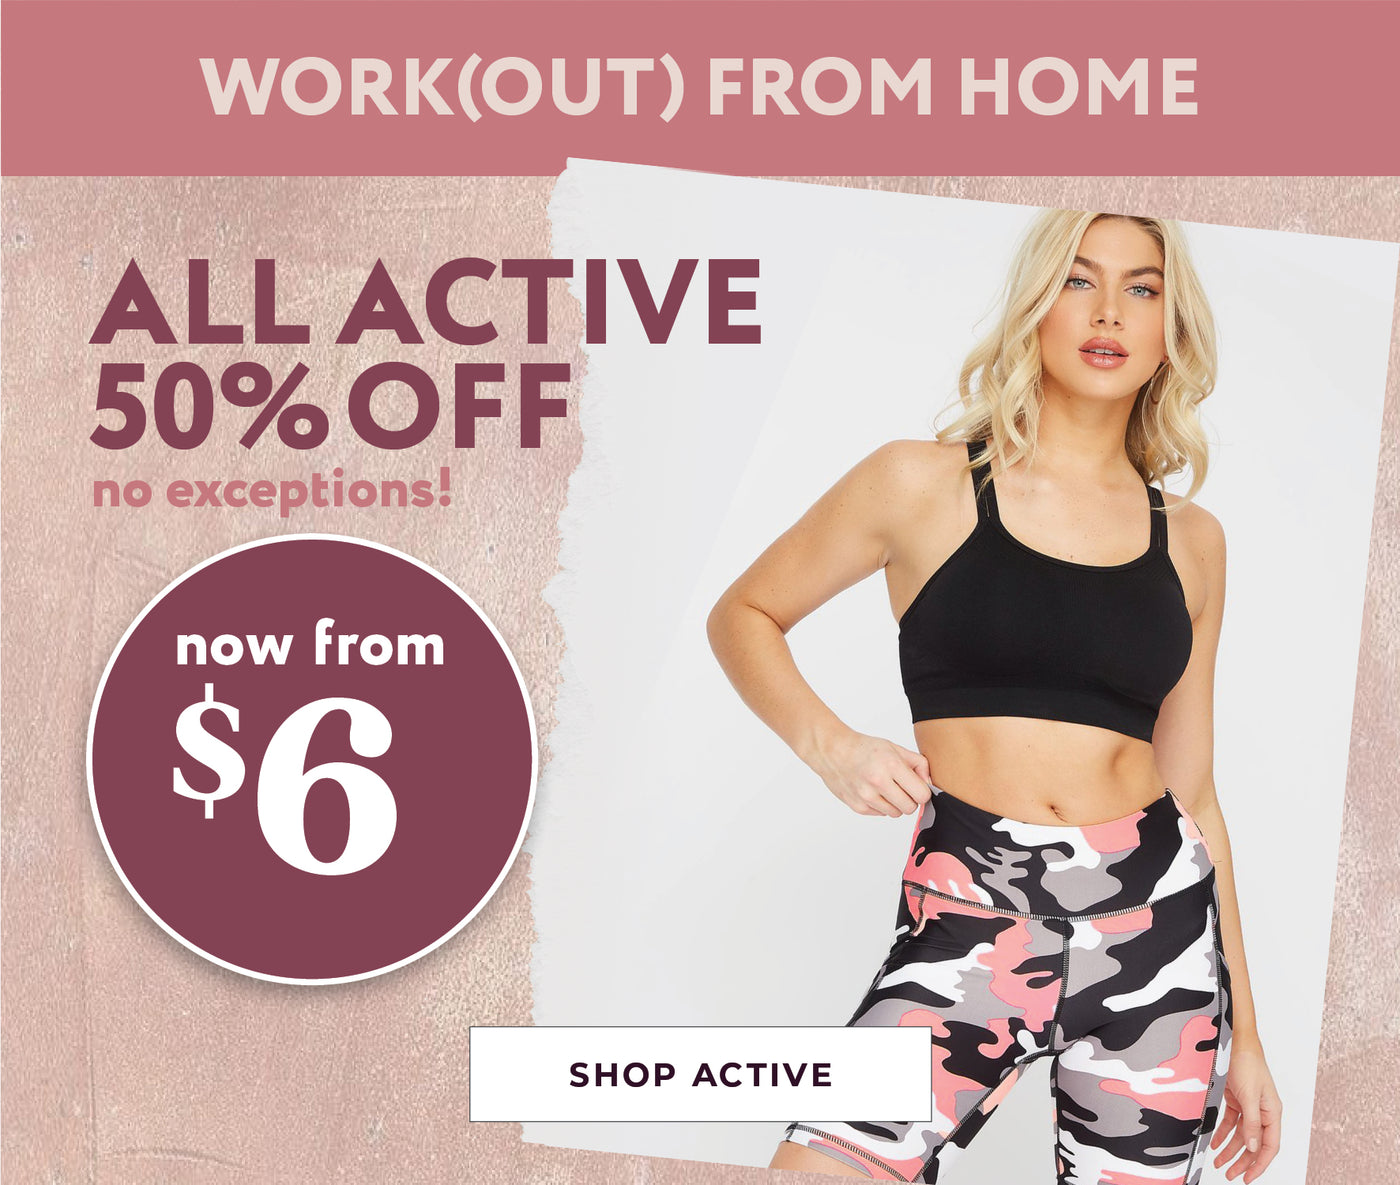 All Active - 50% Off - Now from $6